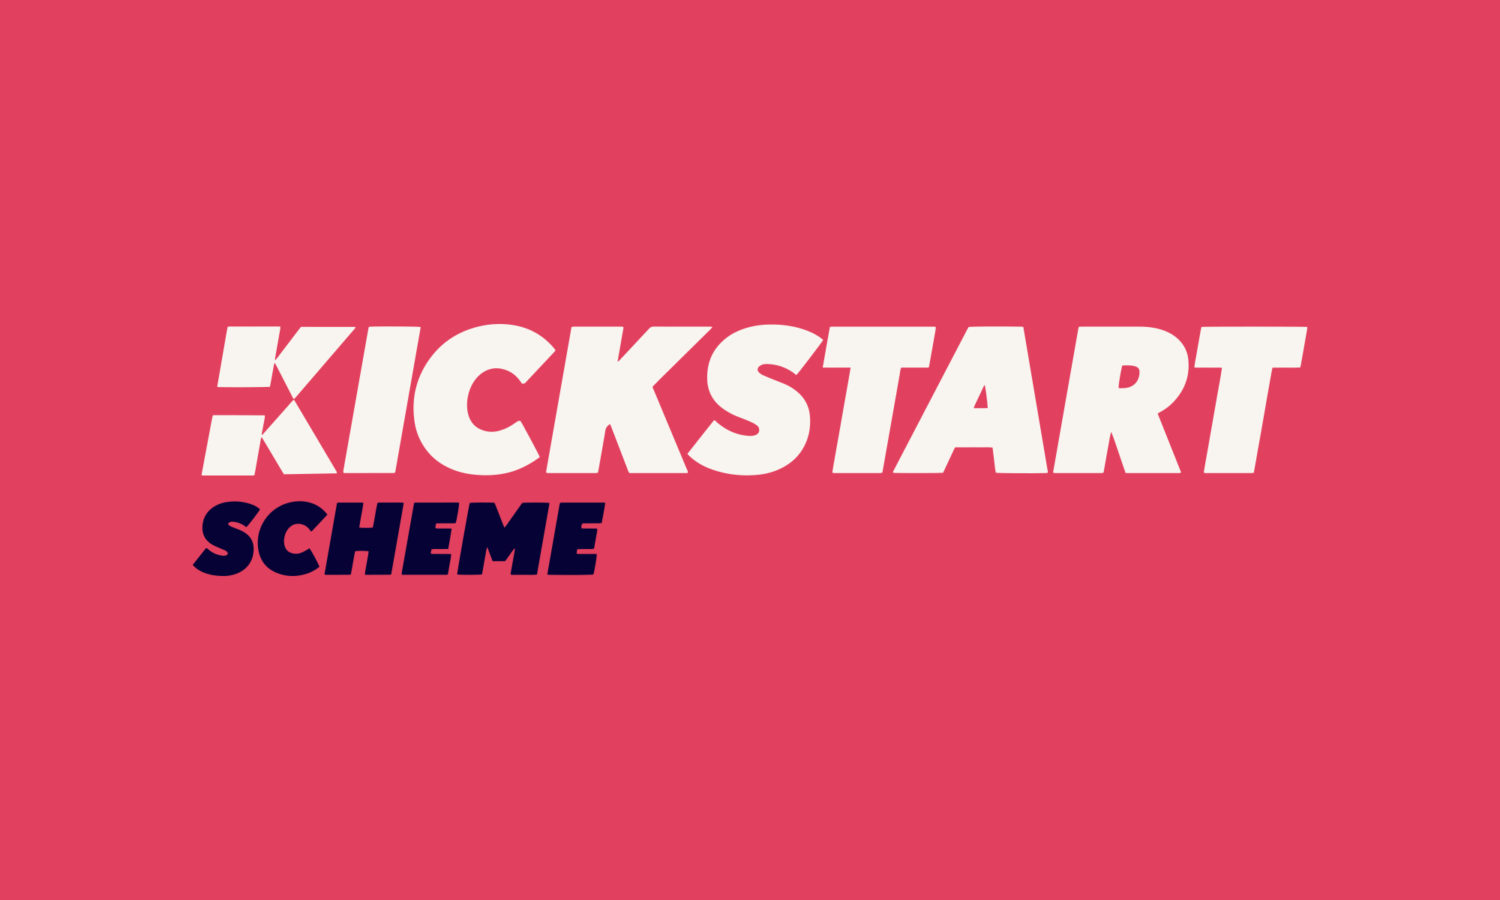 Image of the kickstart-scheme-logo